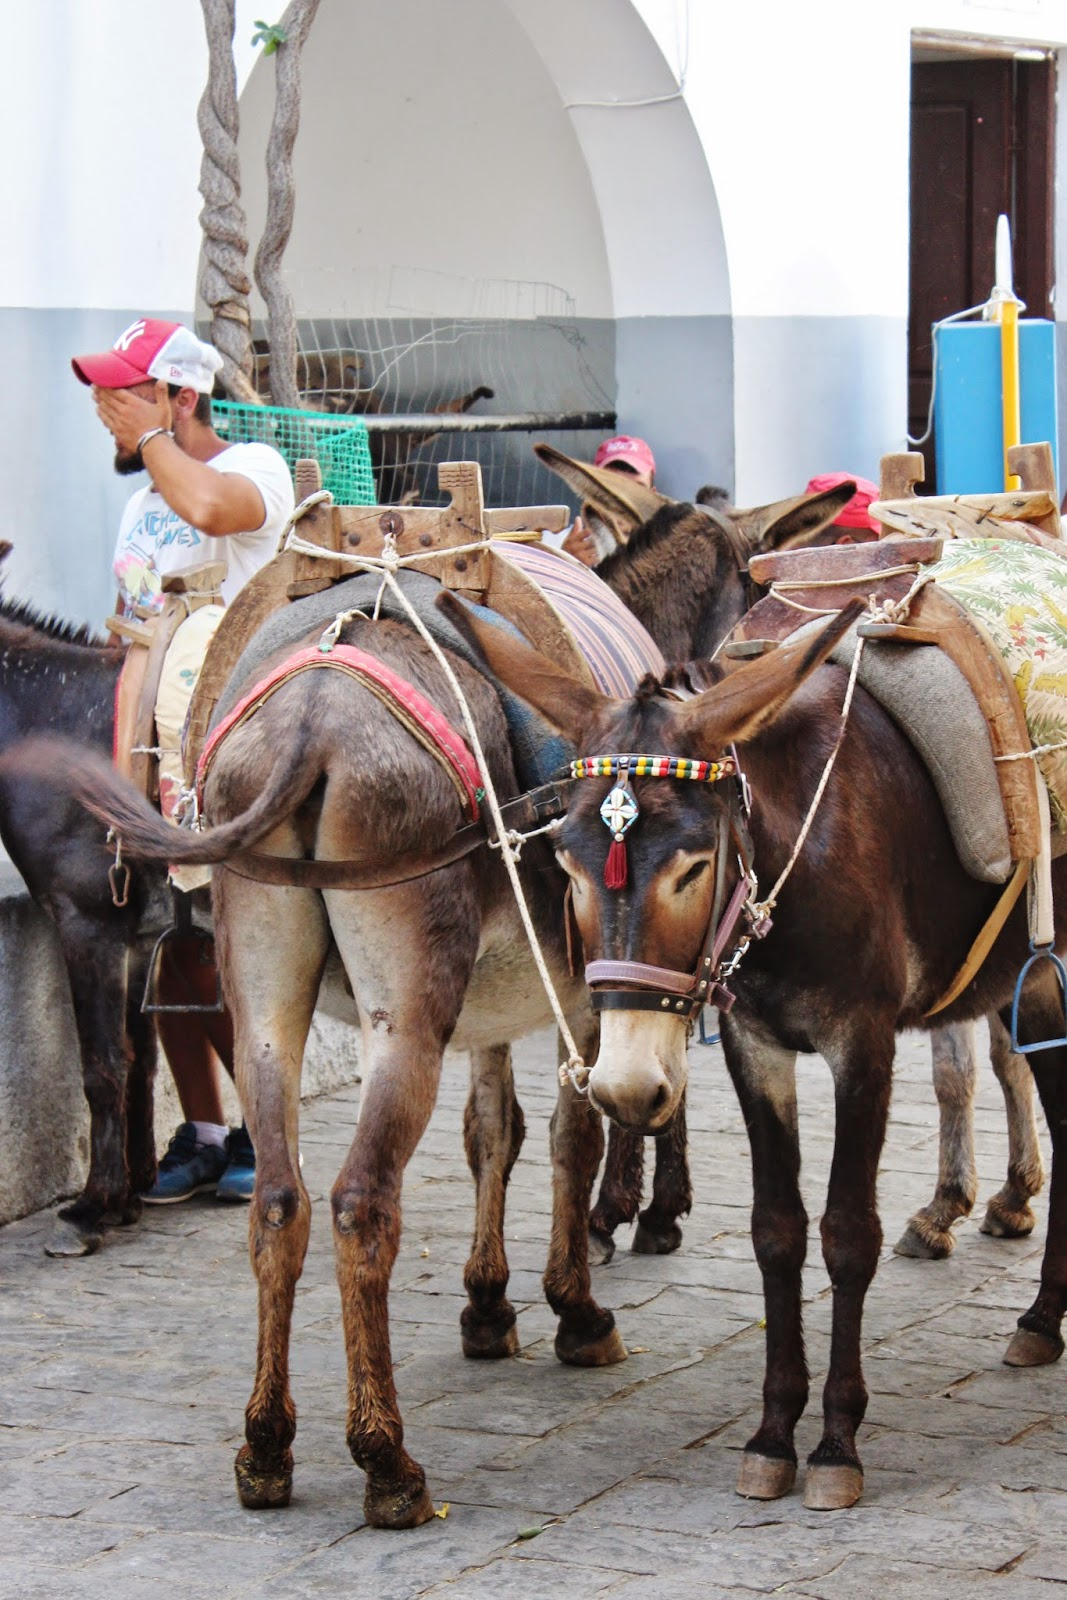 Donkeys in Lindos, Rhodes